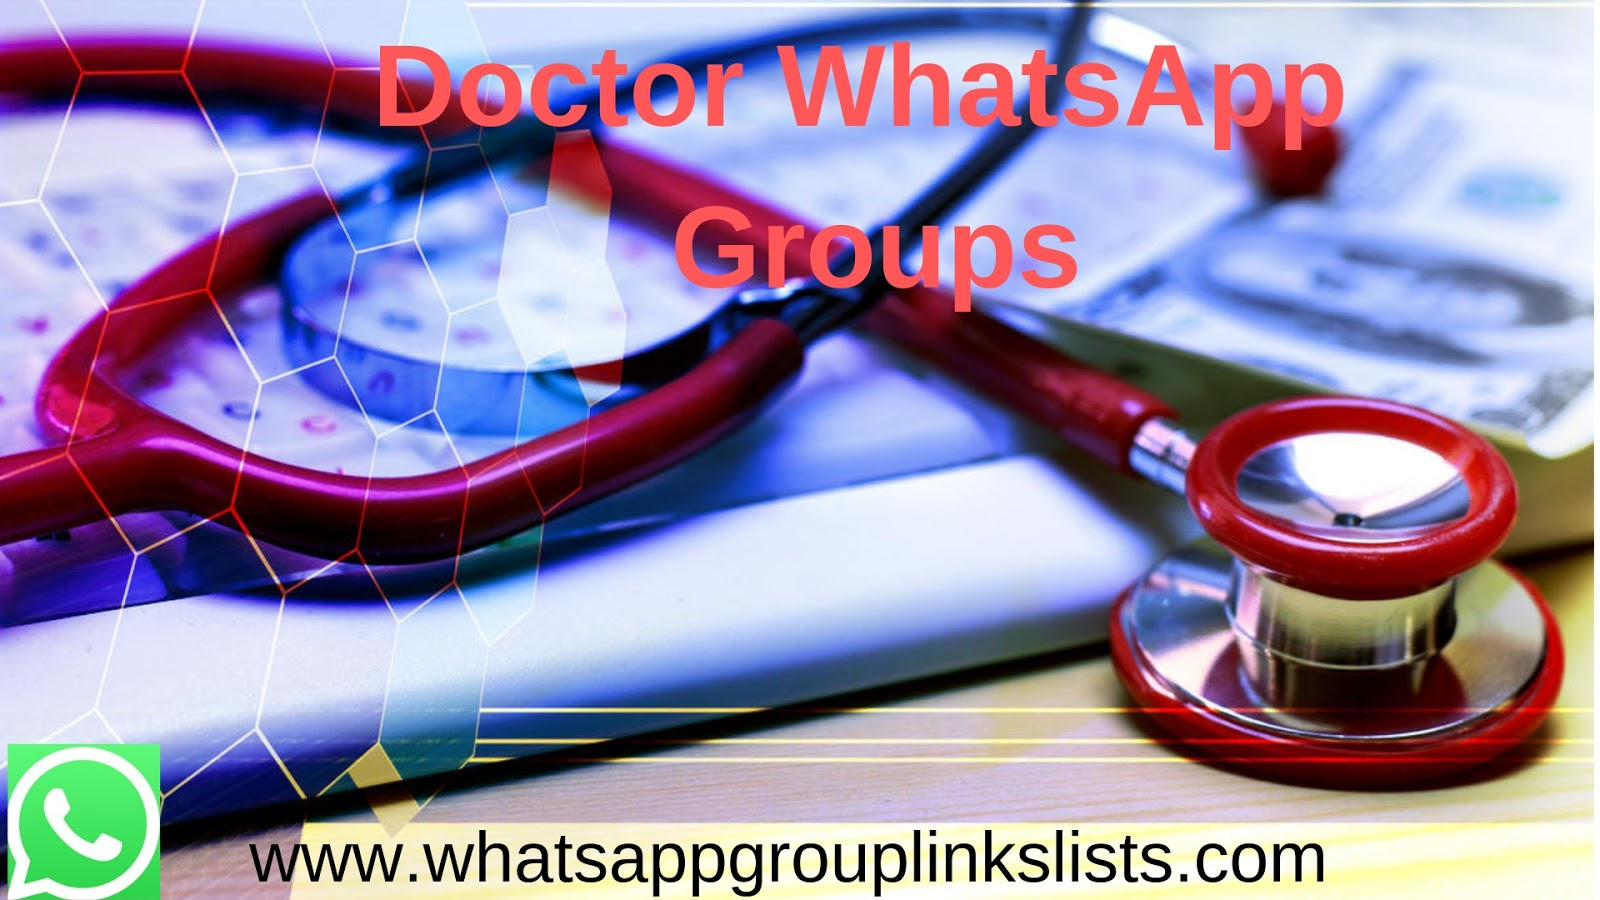 Join Doctor WhatsApp Group links list